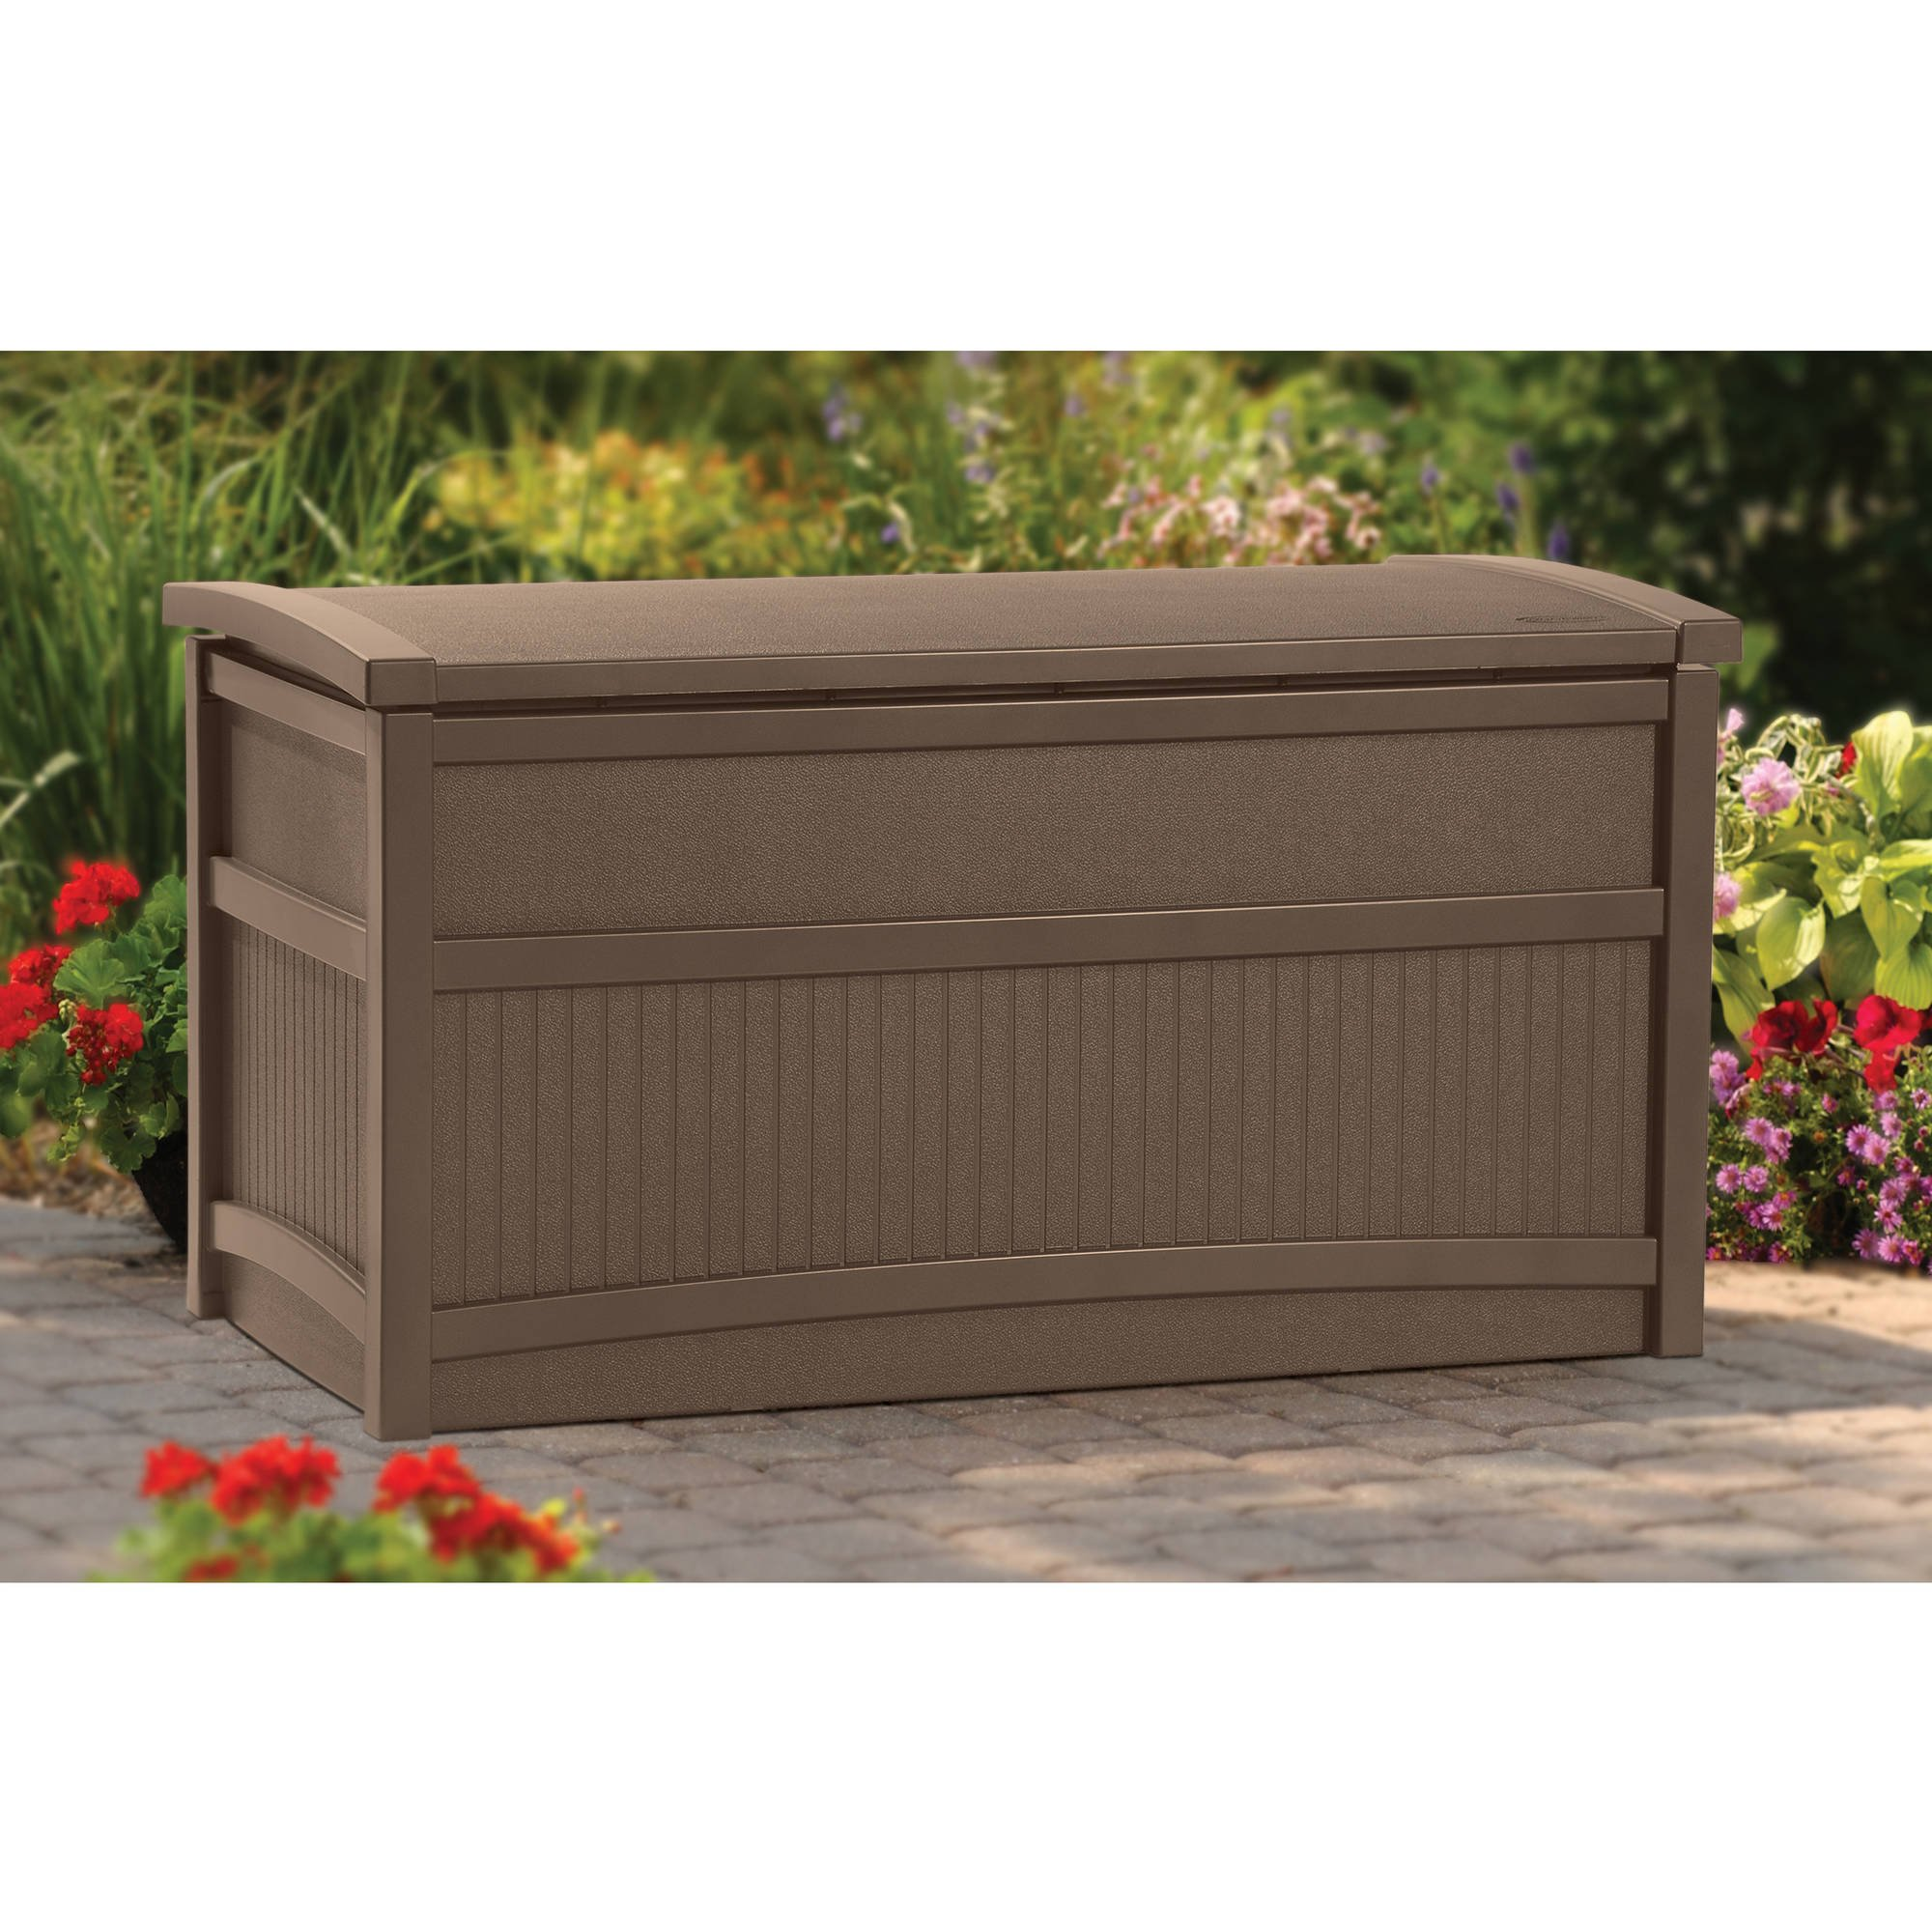 Storage Deck Box, 50 Gallon Mocha Resin Stay Dry design Long Lasting Resin Deck Box Waterproof and Snaps Creating a Dry Area for Garden tools Swimming pool supplies and More